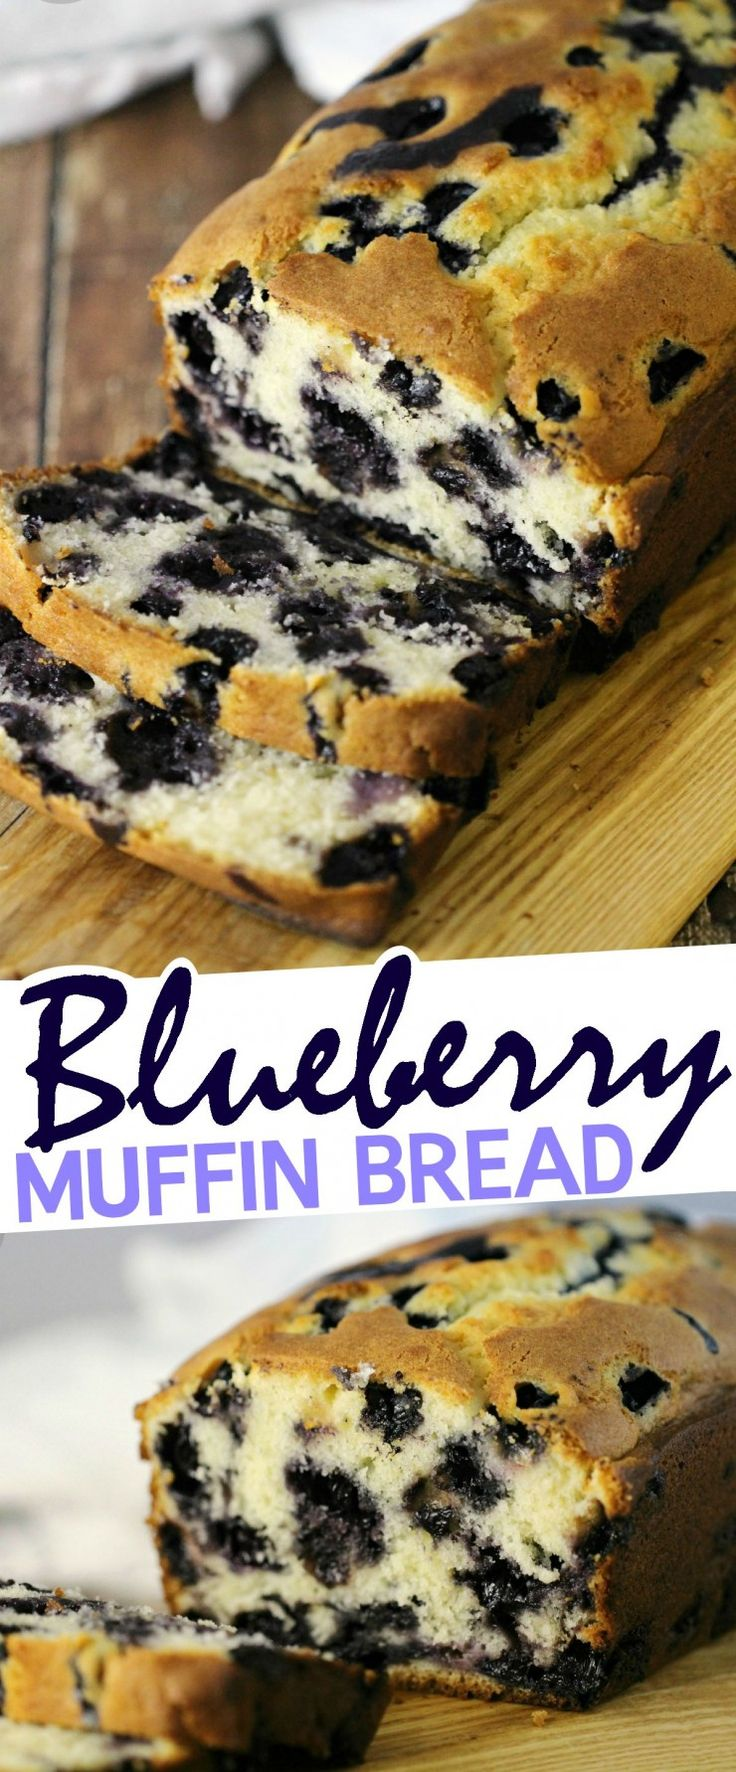 This Blueberry Muffin Bread is a favourite Recipe. This blueberry loaf is…